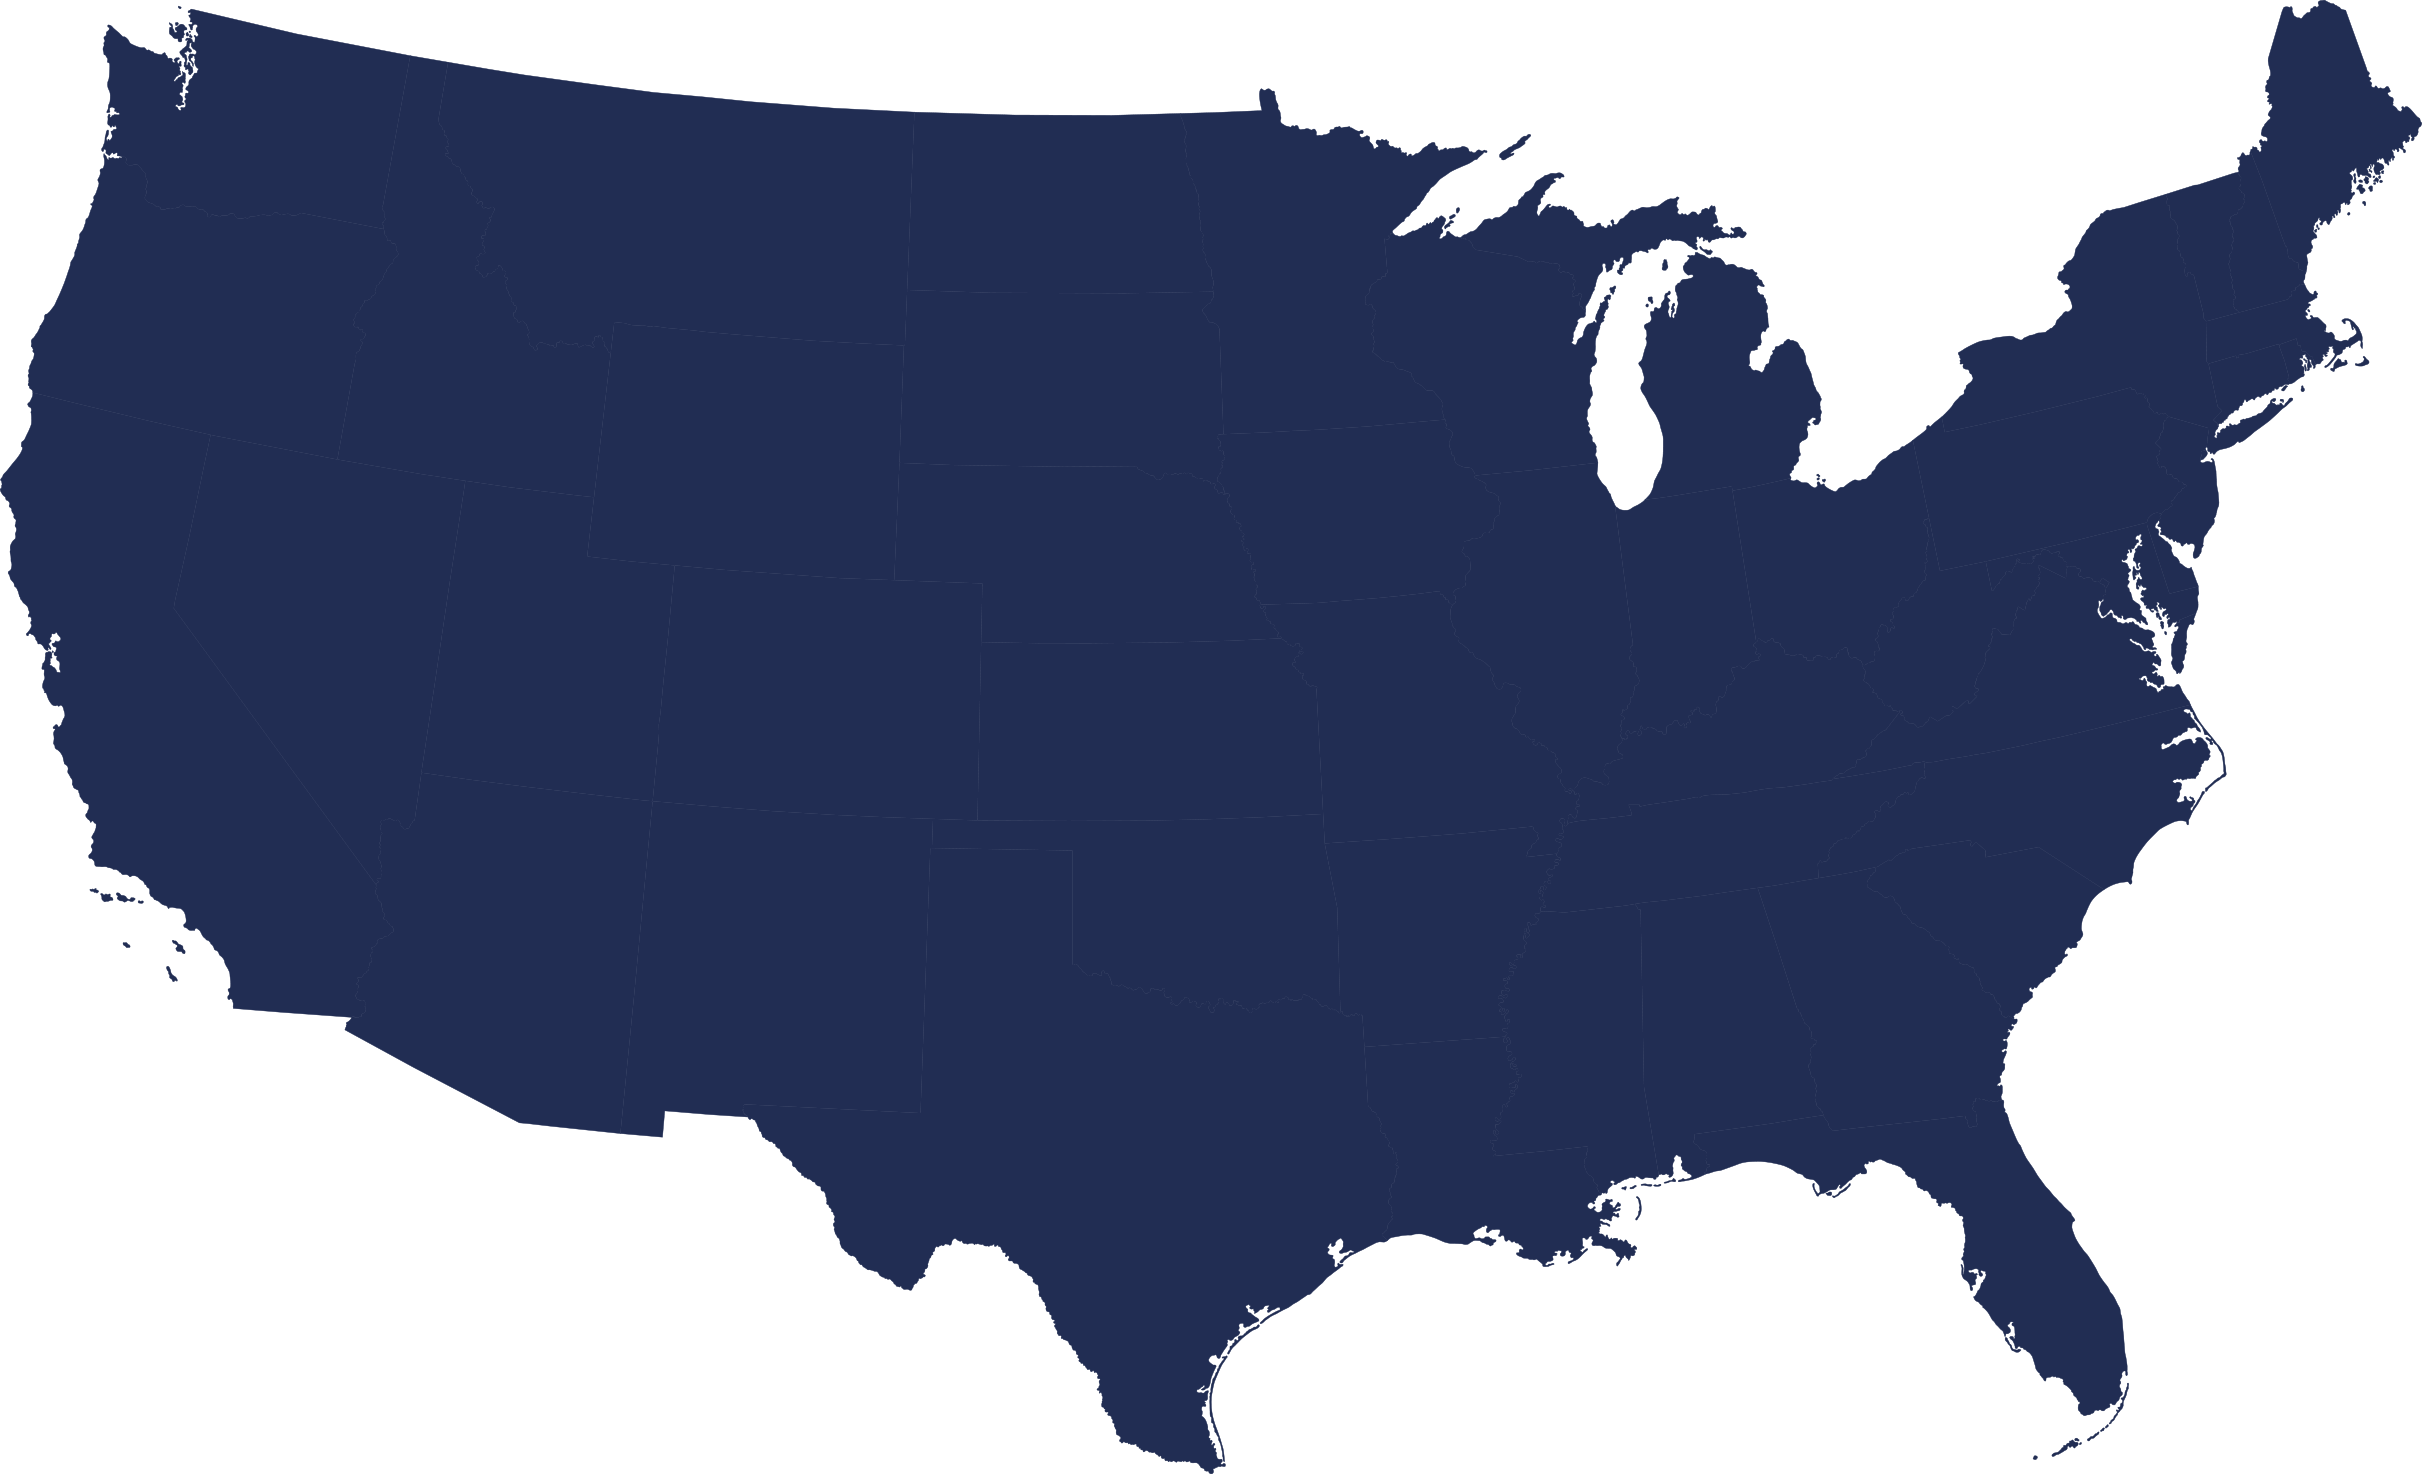 America outline png. Maps of us blue